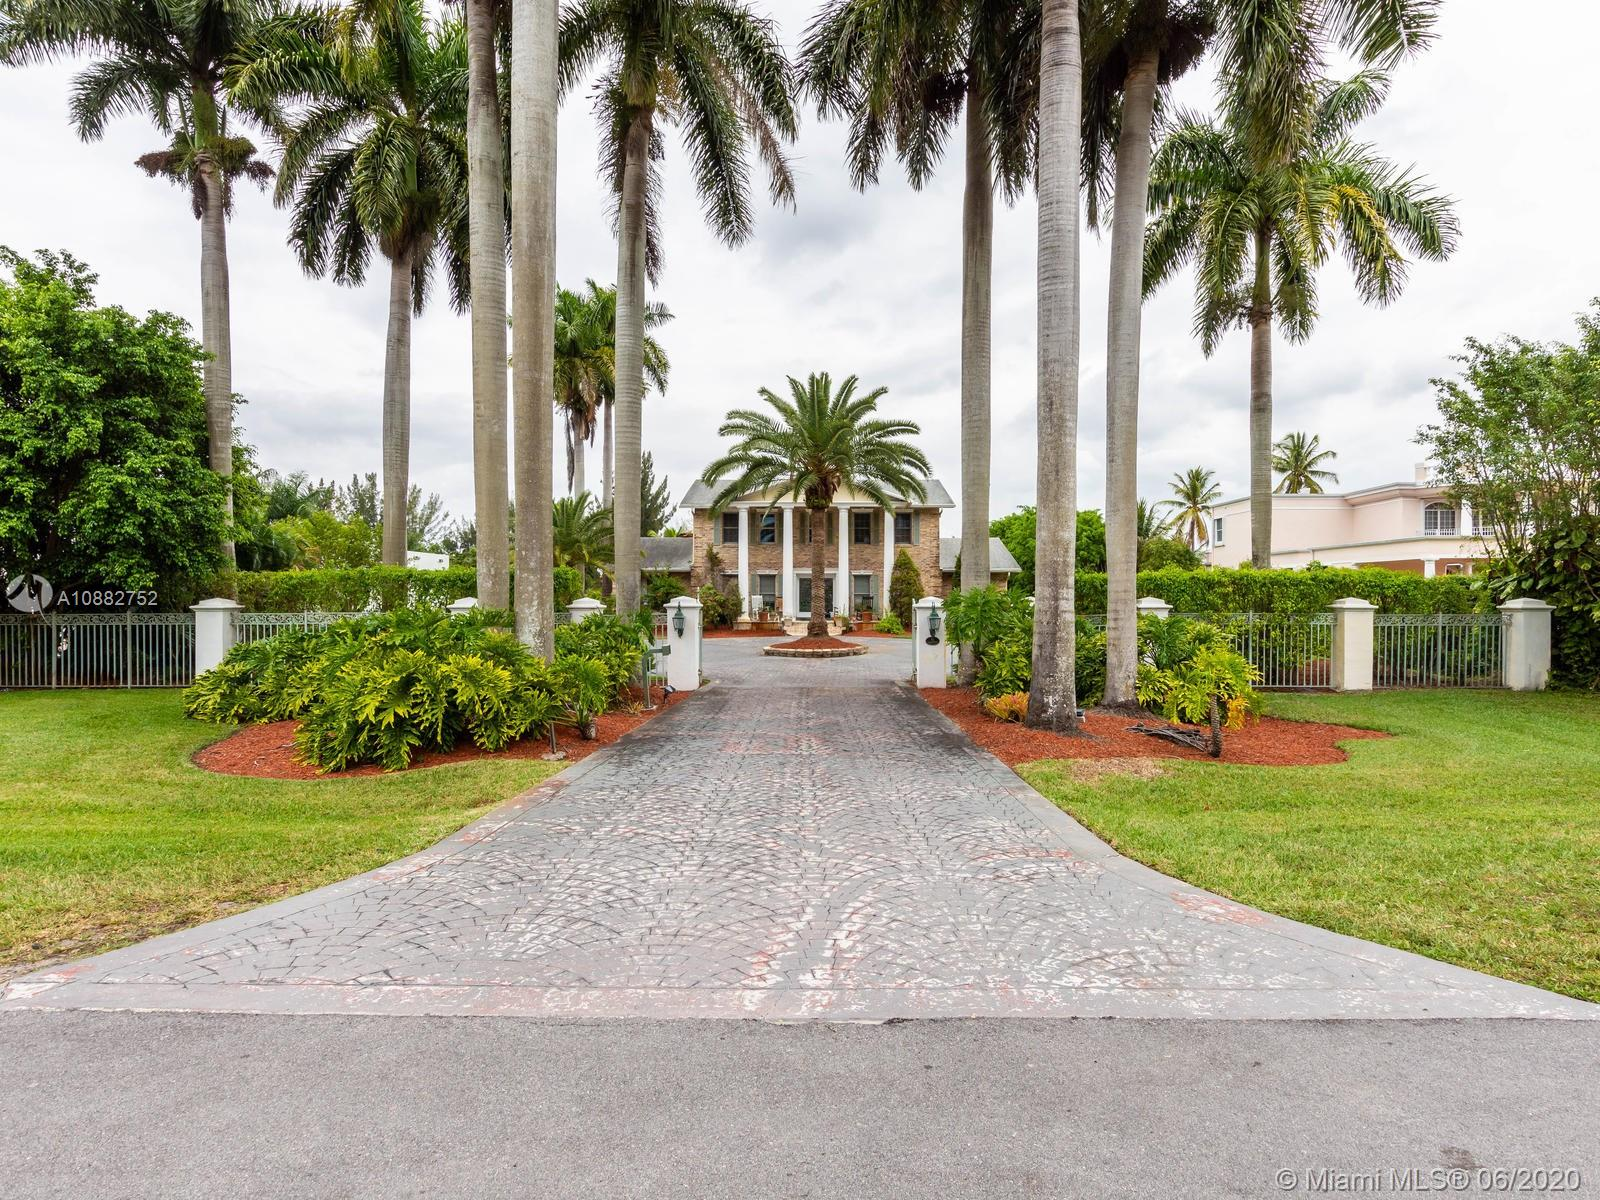 Welcome home to this 5 bed, 5 bath, 2 car garage Pool home on over 3/4 acre lot in Plantation. There's plenty of space out back to park your boat, r/v or any toys. The yard has space for a barn, garden or for your kids and pets to run around. Stay cool with 4 A/C units during the summer and enjoy a swim in the 50x20 Lap Pool with a new pump (RESURFACED 4/20). Relax in the 8 person above ground hot tub after a workout. A 6 Zone Sprinkler System will keep your lawn/landscaping healthy and lush. After all your outdoor activities, clean up in the laundry room with built-in cabinets. One bedroom downstairs is 20x15 with a bathroom and walk-in closet (addition). Second downstairs bedroom is very large also. 2015 roof replacement and Septic Tank pumped out 12/2018. Appraised at 1,045,000!